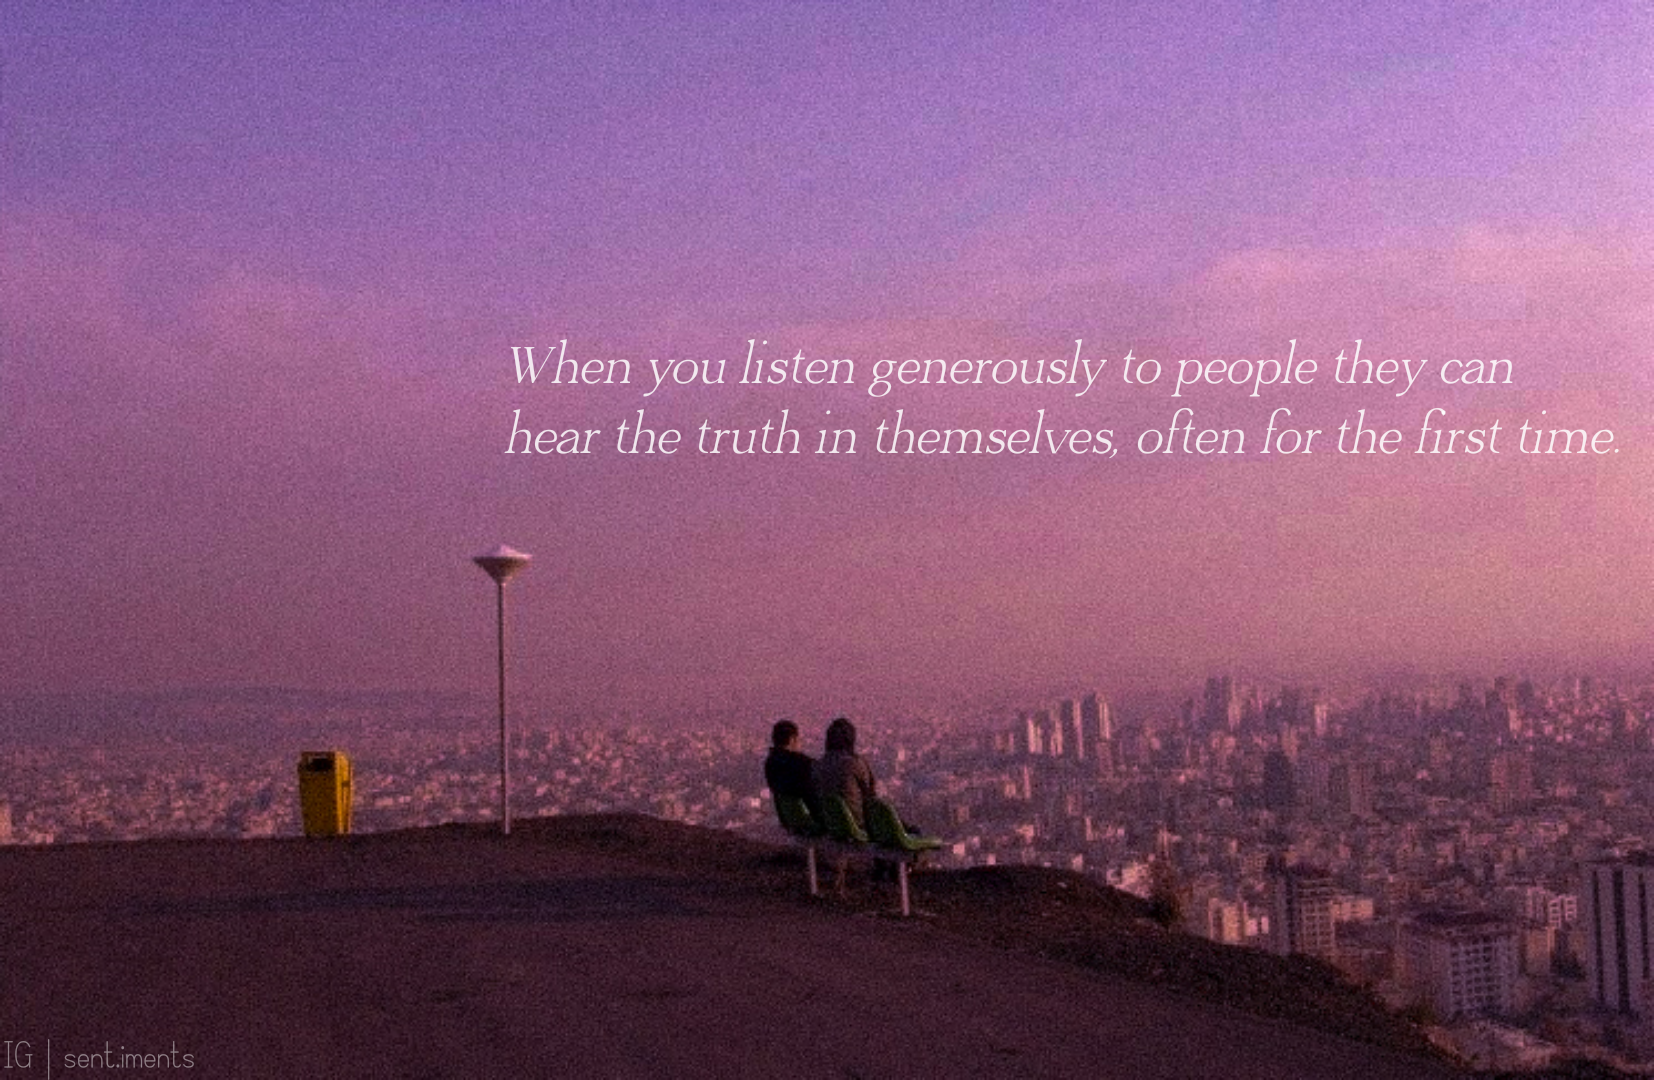 """When you listen generously to people they can hear the truth in themselves, often for the first time."" by Rachel Naomi Remen [1654 X 1080]"